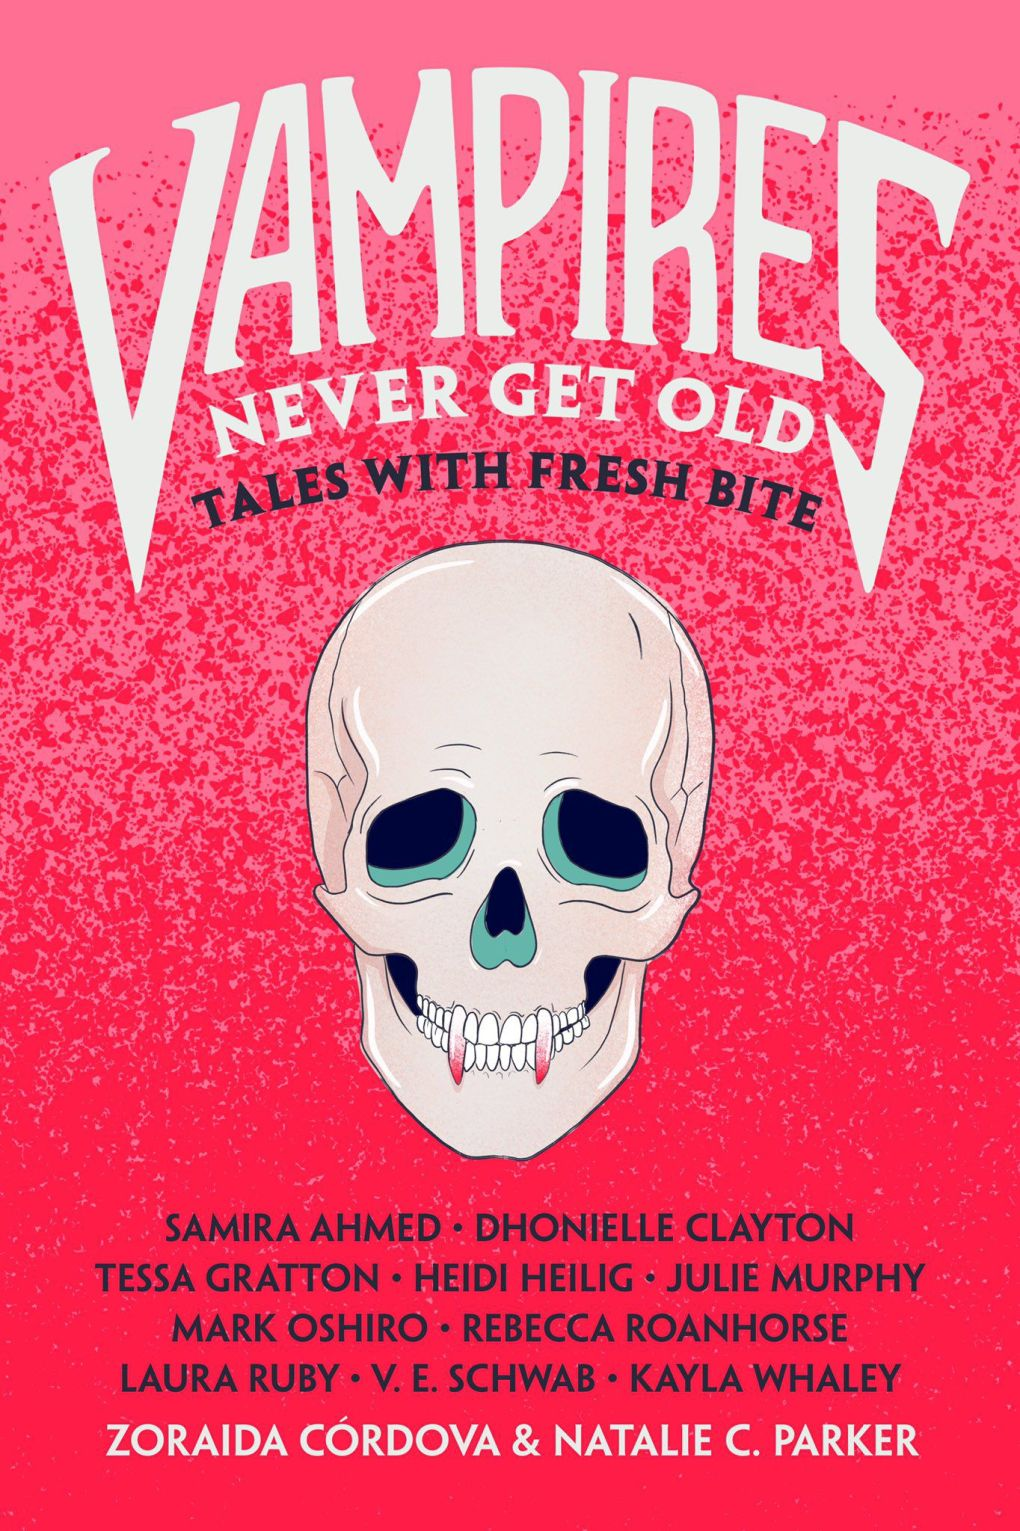 Vampires Never Get Old cover, which is pink with a skull